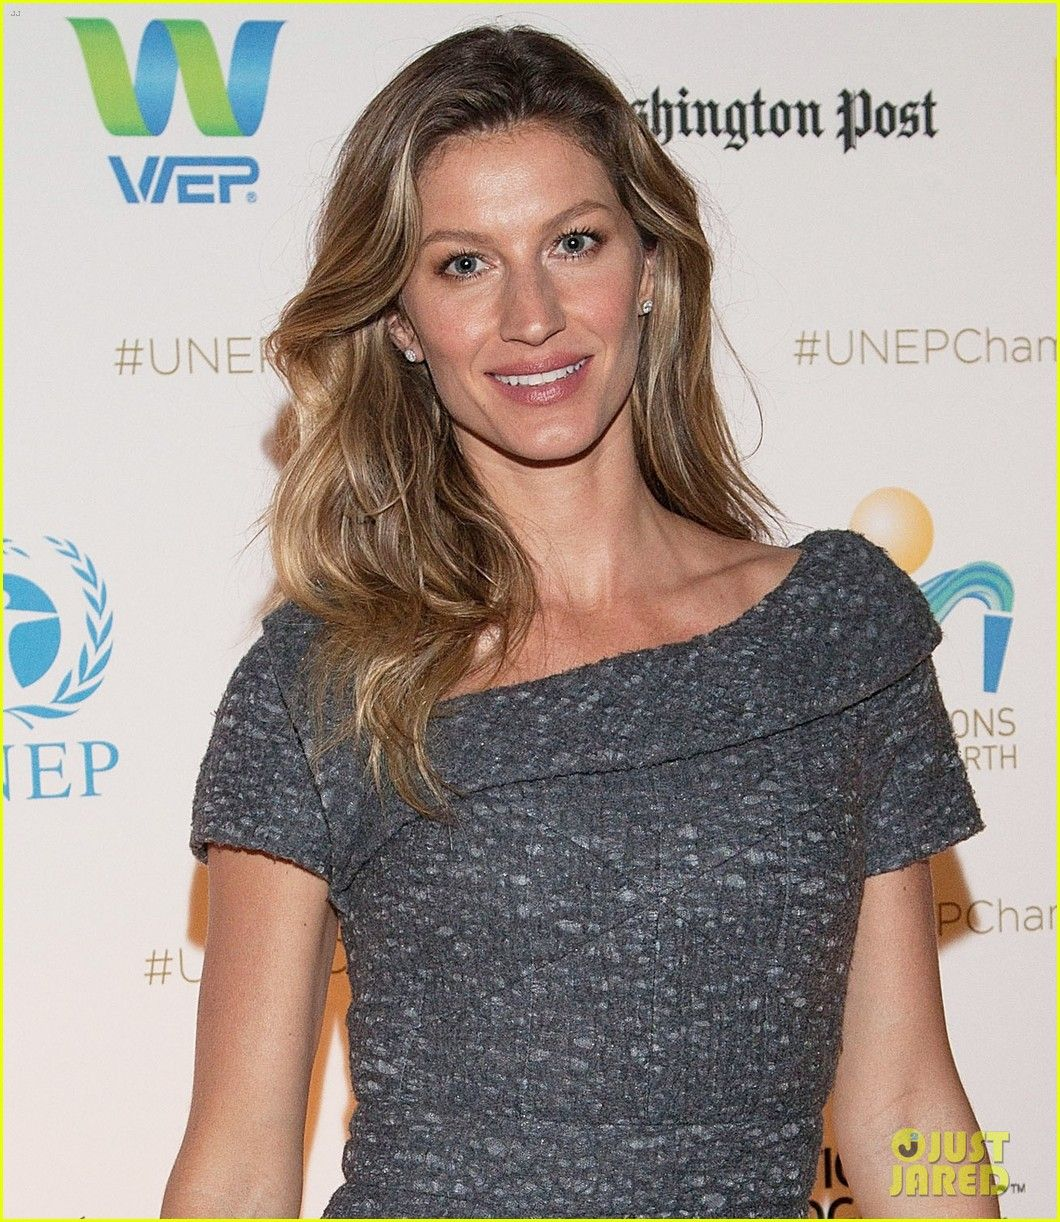 Gisele bundchen hits washington in style for uneps gisele